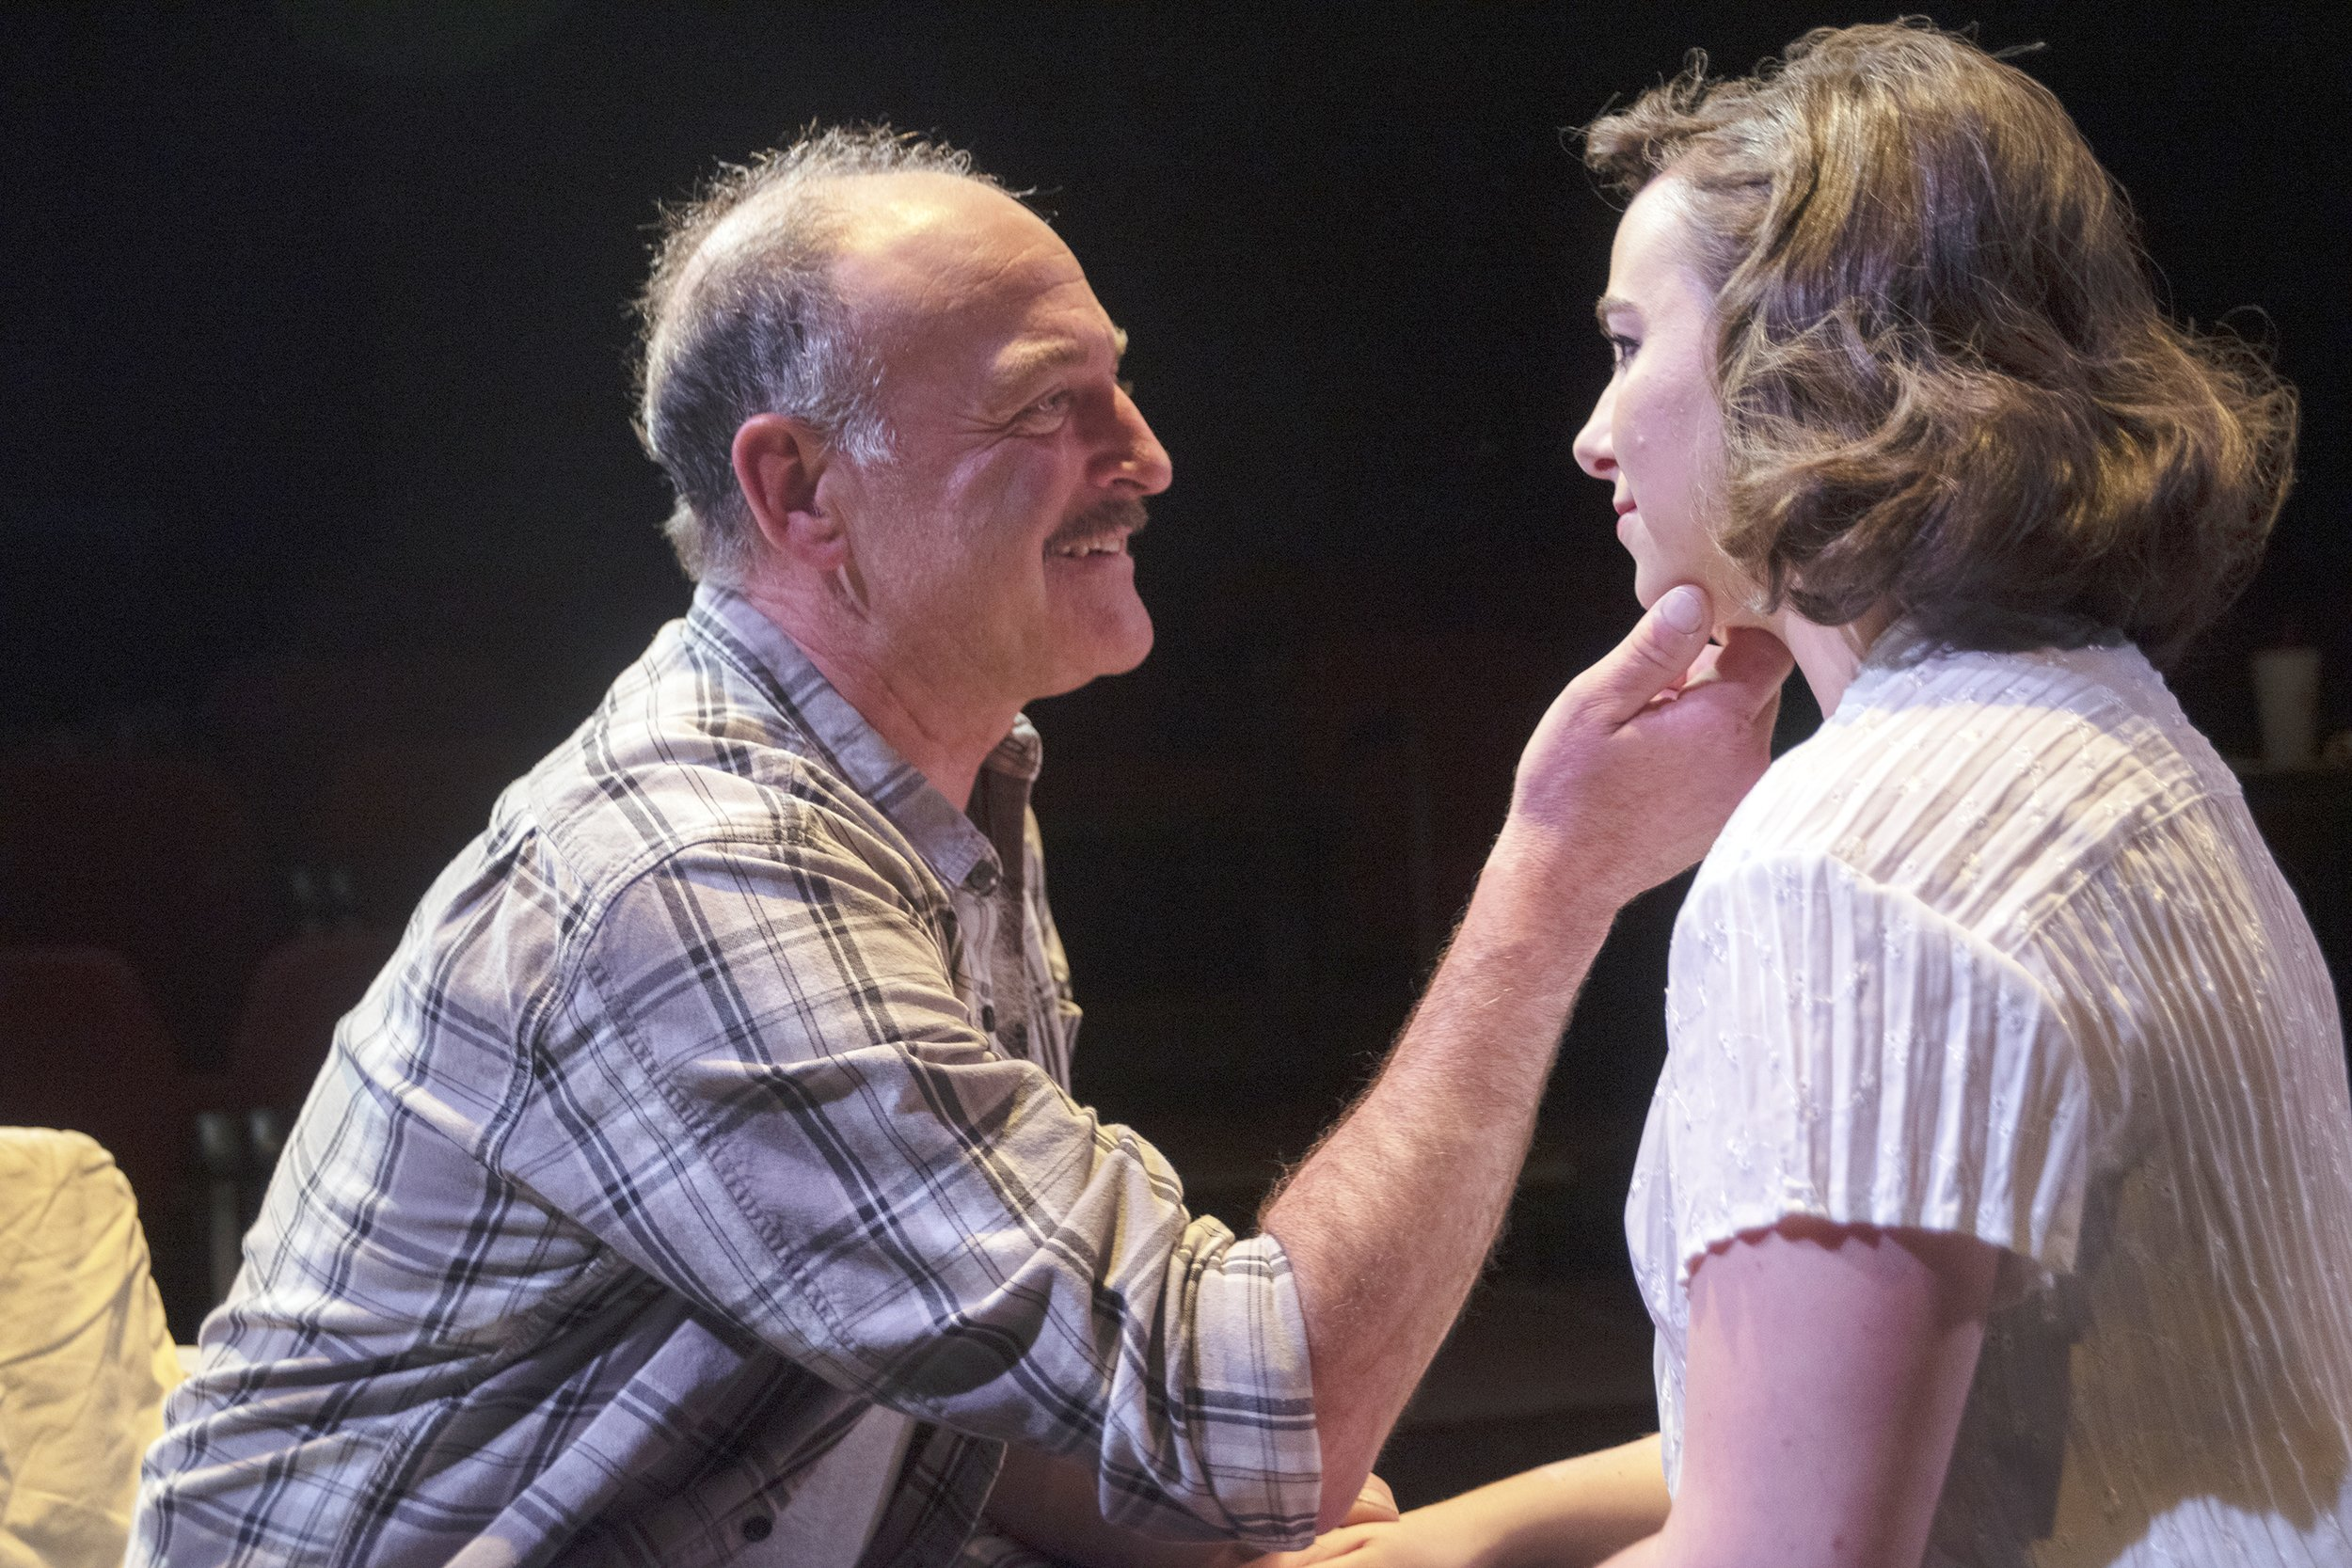 Review: Love and obsession in 'View from the Bridge' thumbnail